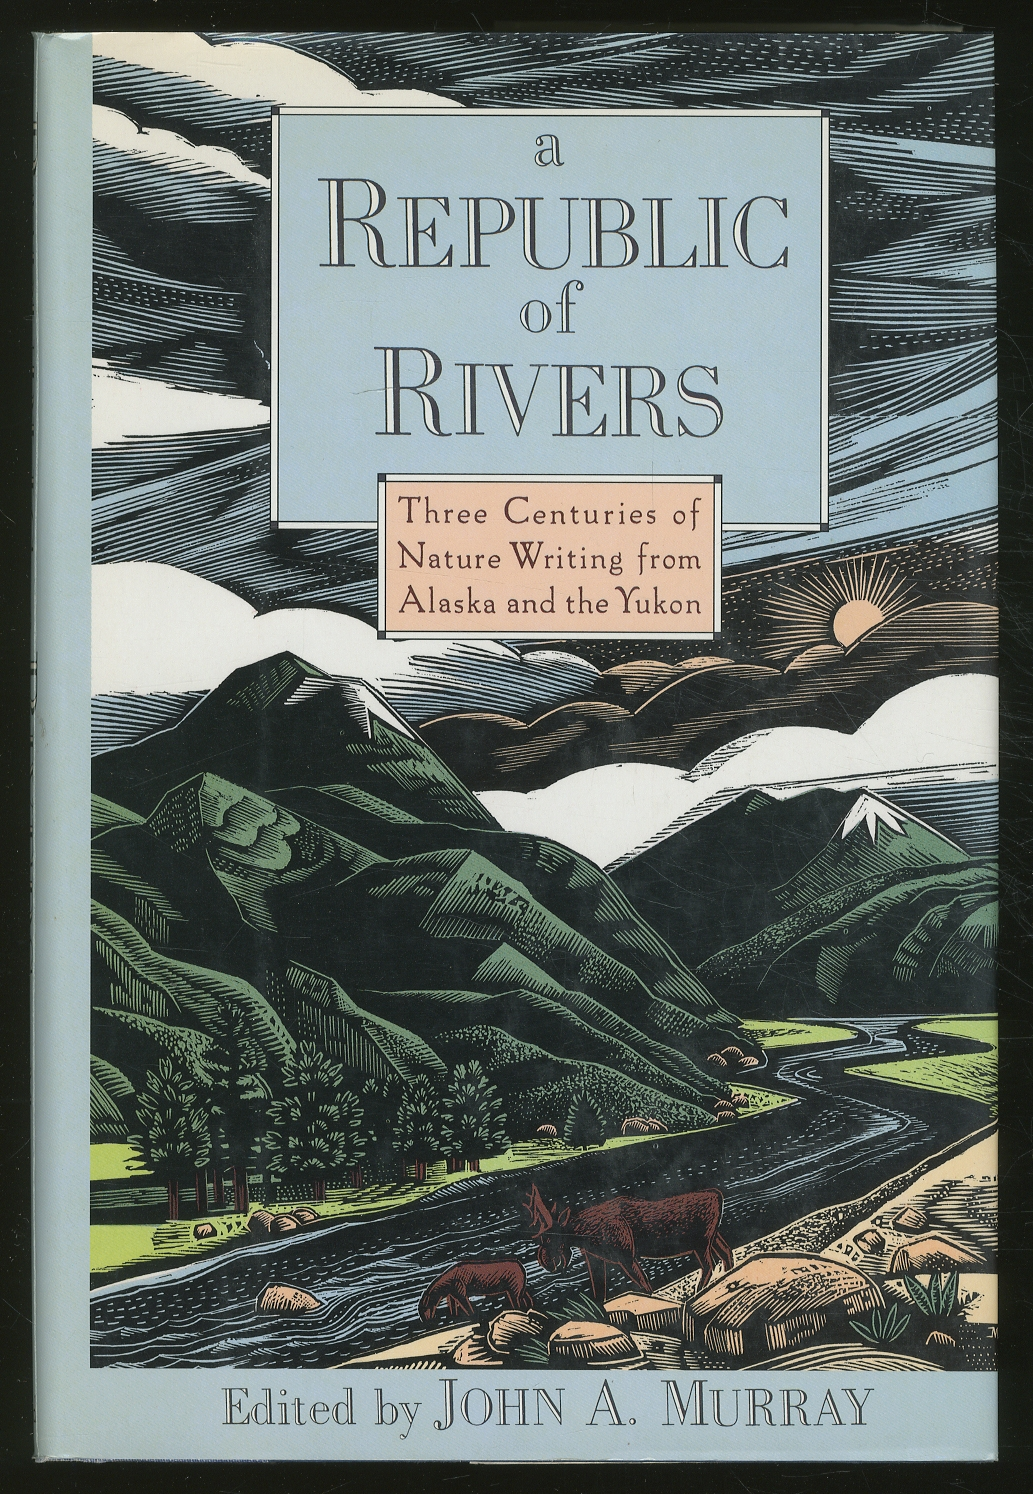 A Republic of Rivers: Three Centuries of Nature Writing from Alaska and the Yukon - MURRAY, John, edited by.